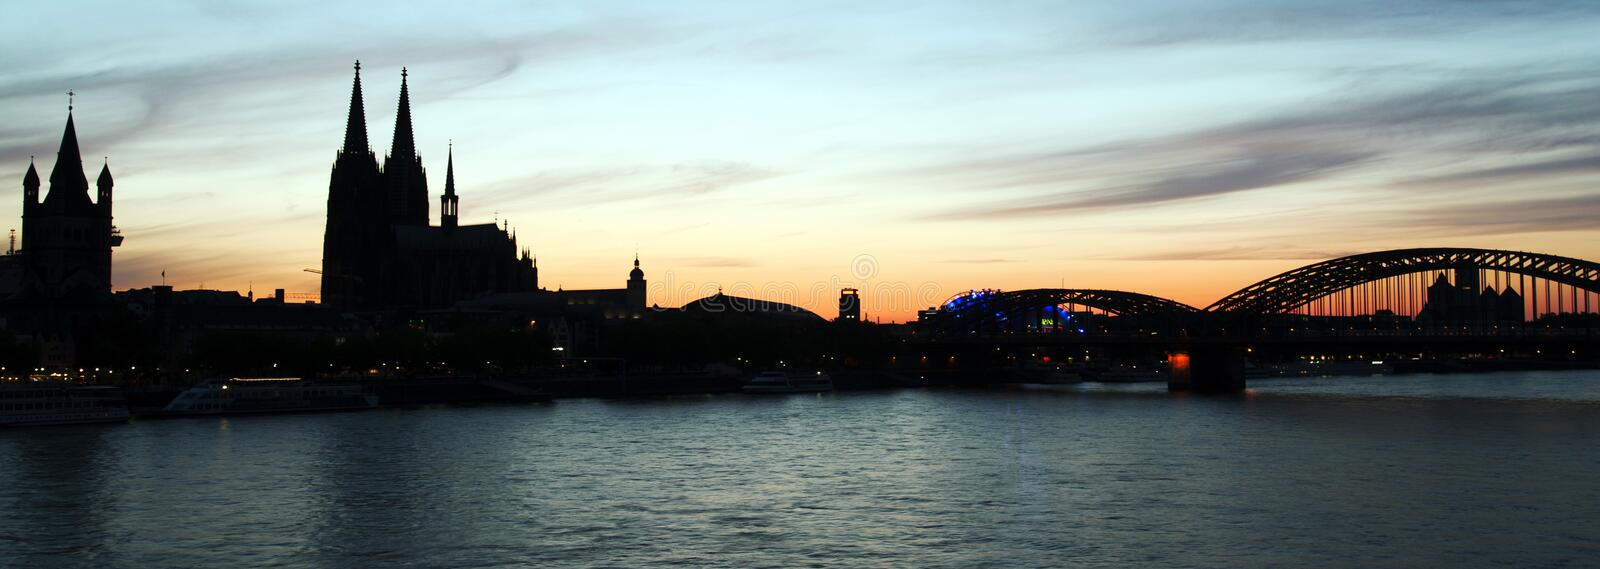 Silhouette of Cologne with Cathedral at sunset royalty free stock photos